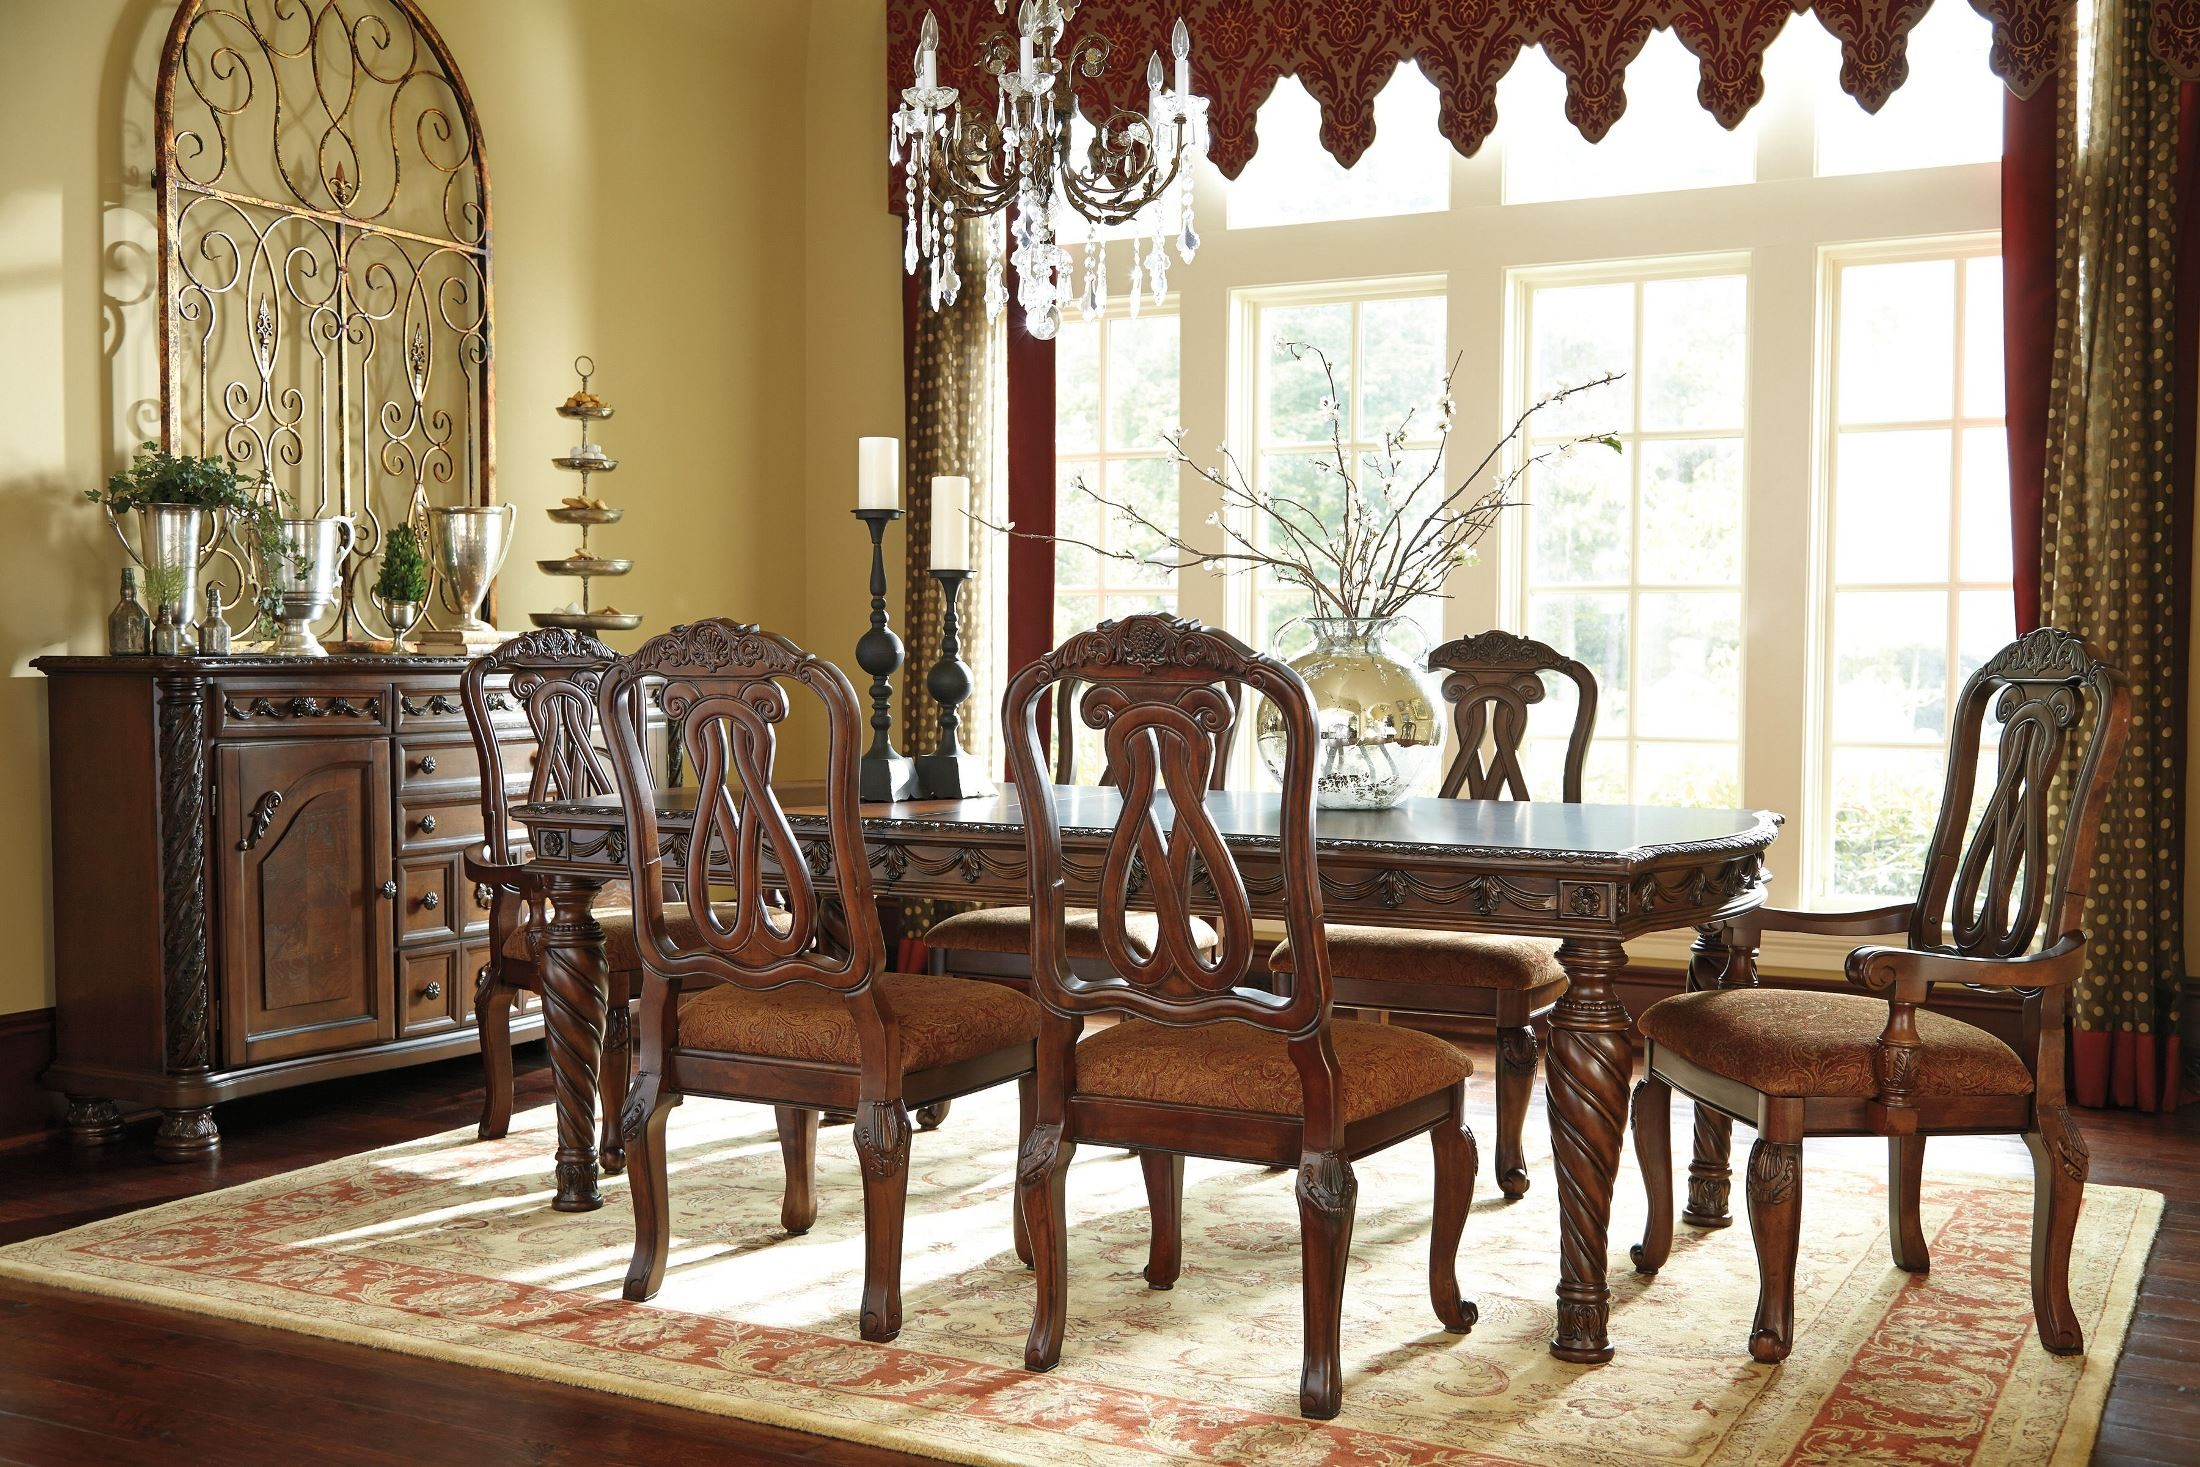 dining room set for sale in toronto. 1697994 dining room set for sale in toronto n